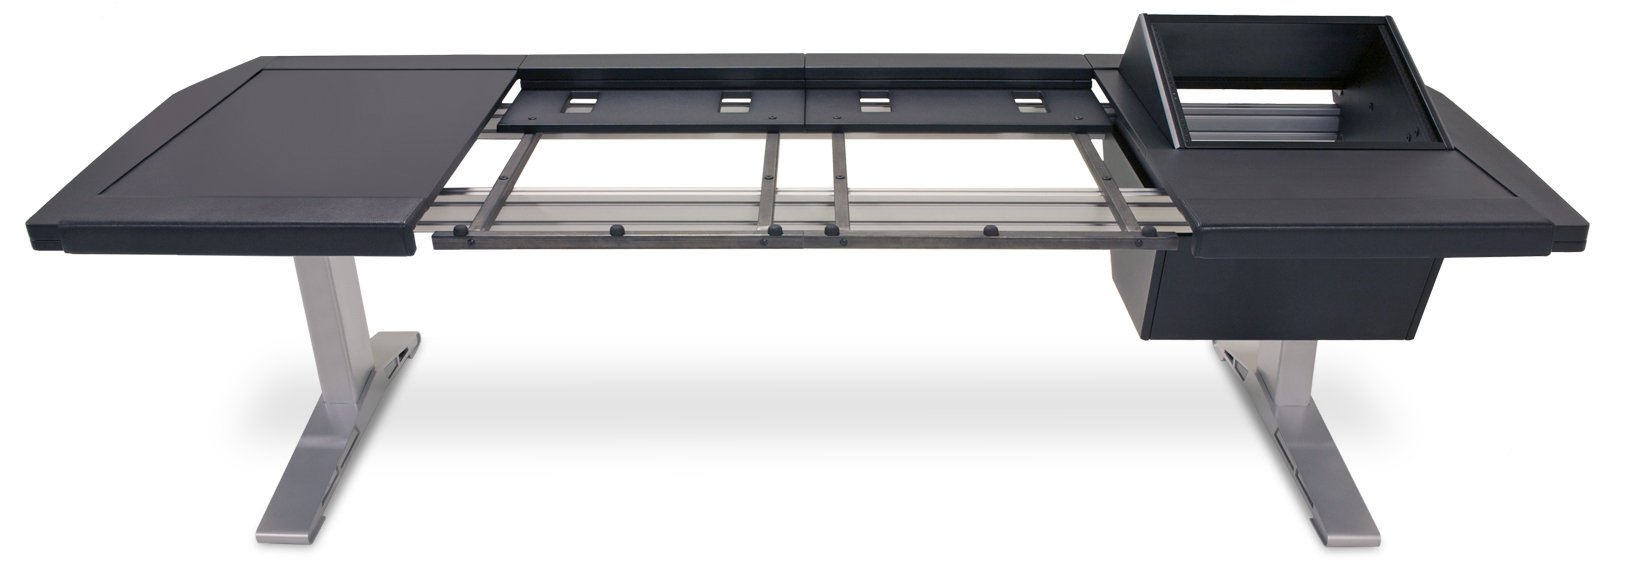 Console Frame with 8RU Rack, for AVID M10 or M40 Systems